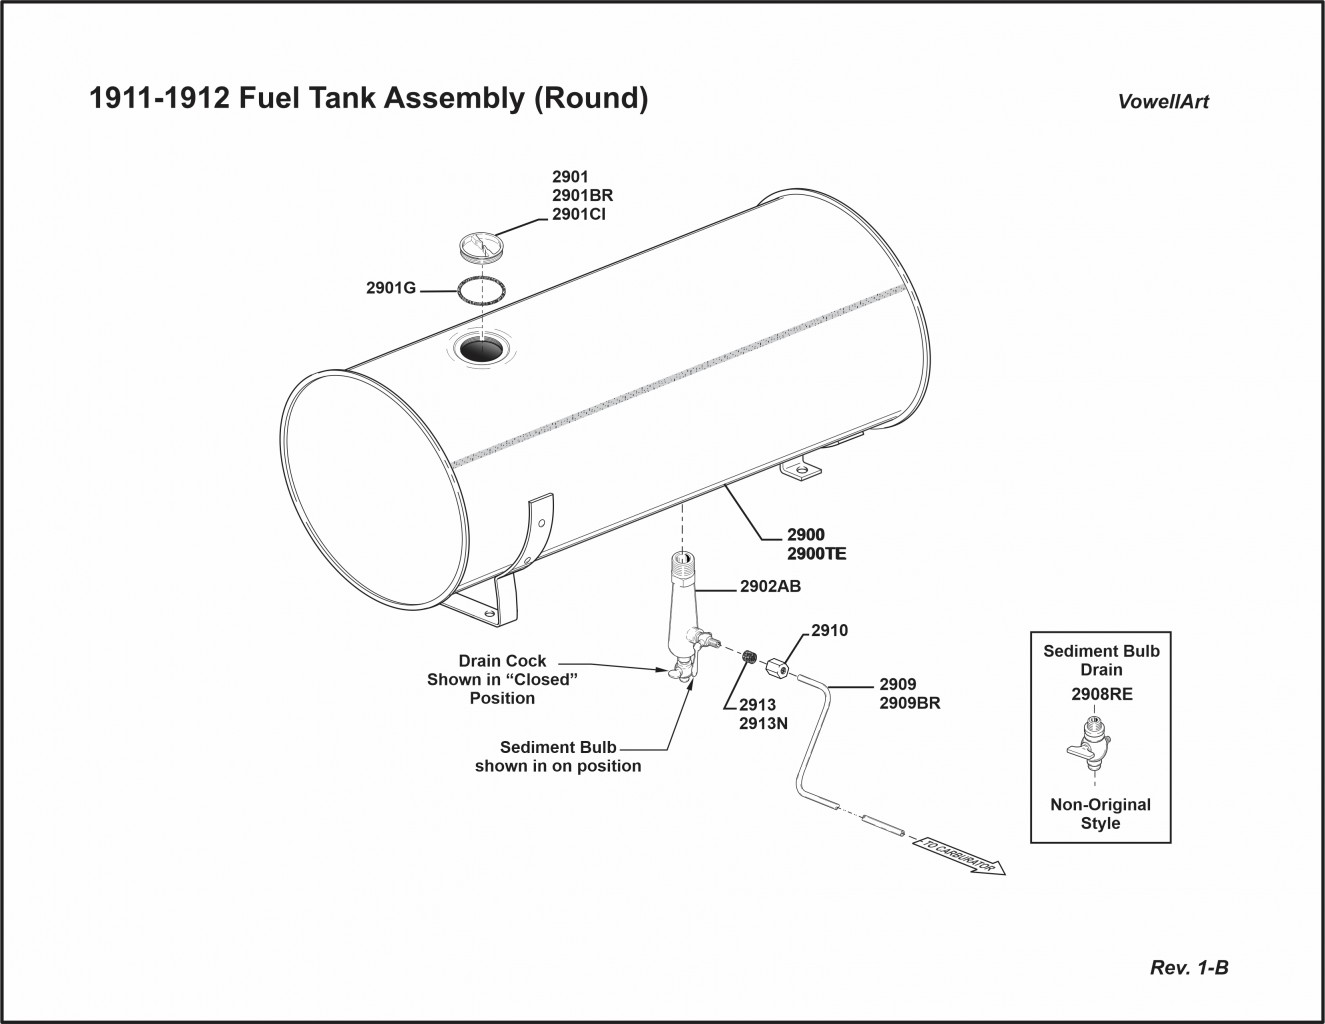 1911-1912 Fuel Tank Assembly